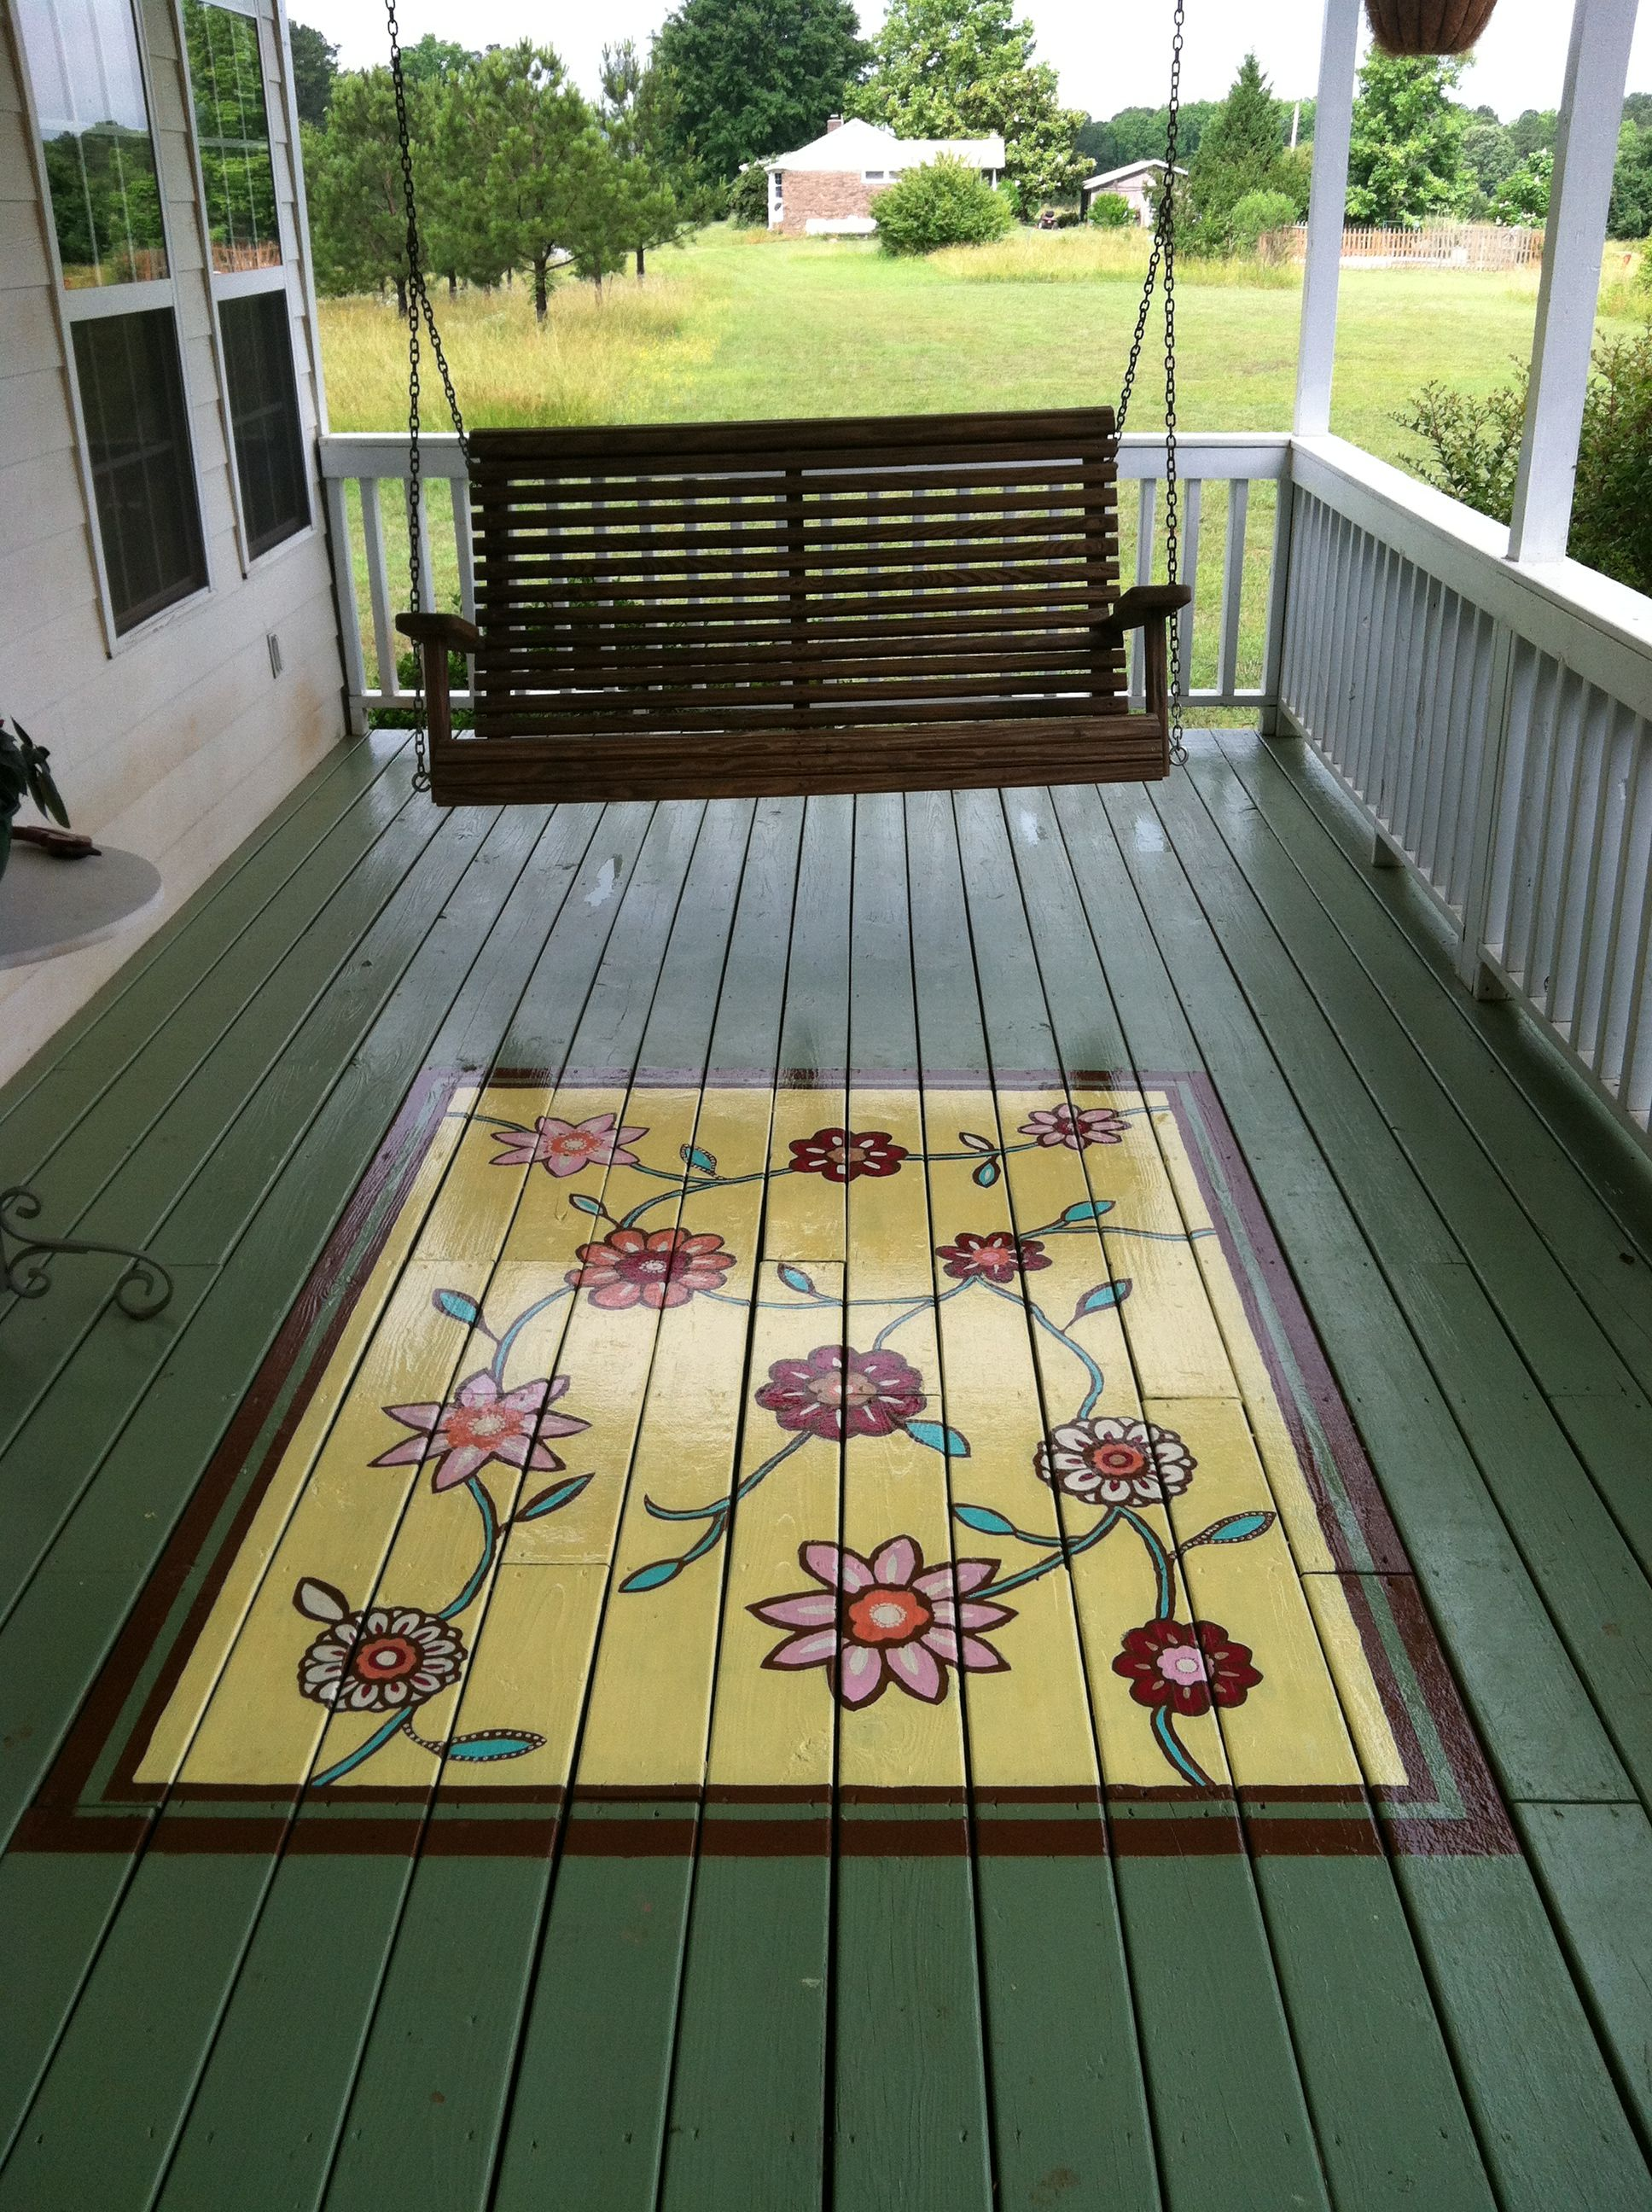 Painted Porch Rug Porch Paint Porch Rug Painted Porch Floors